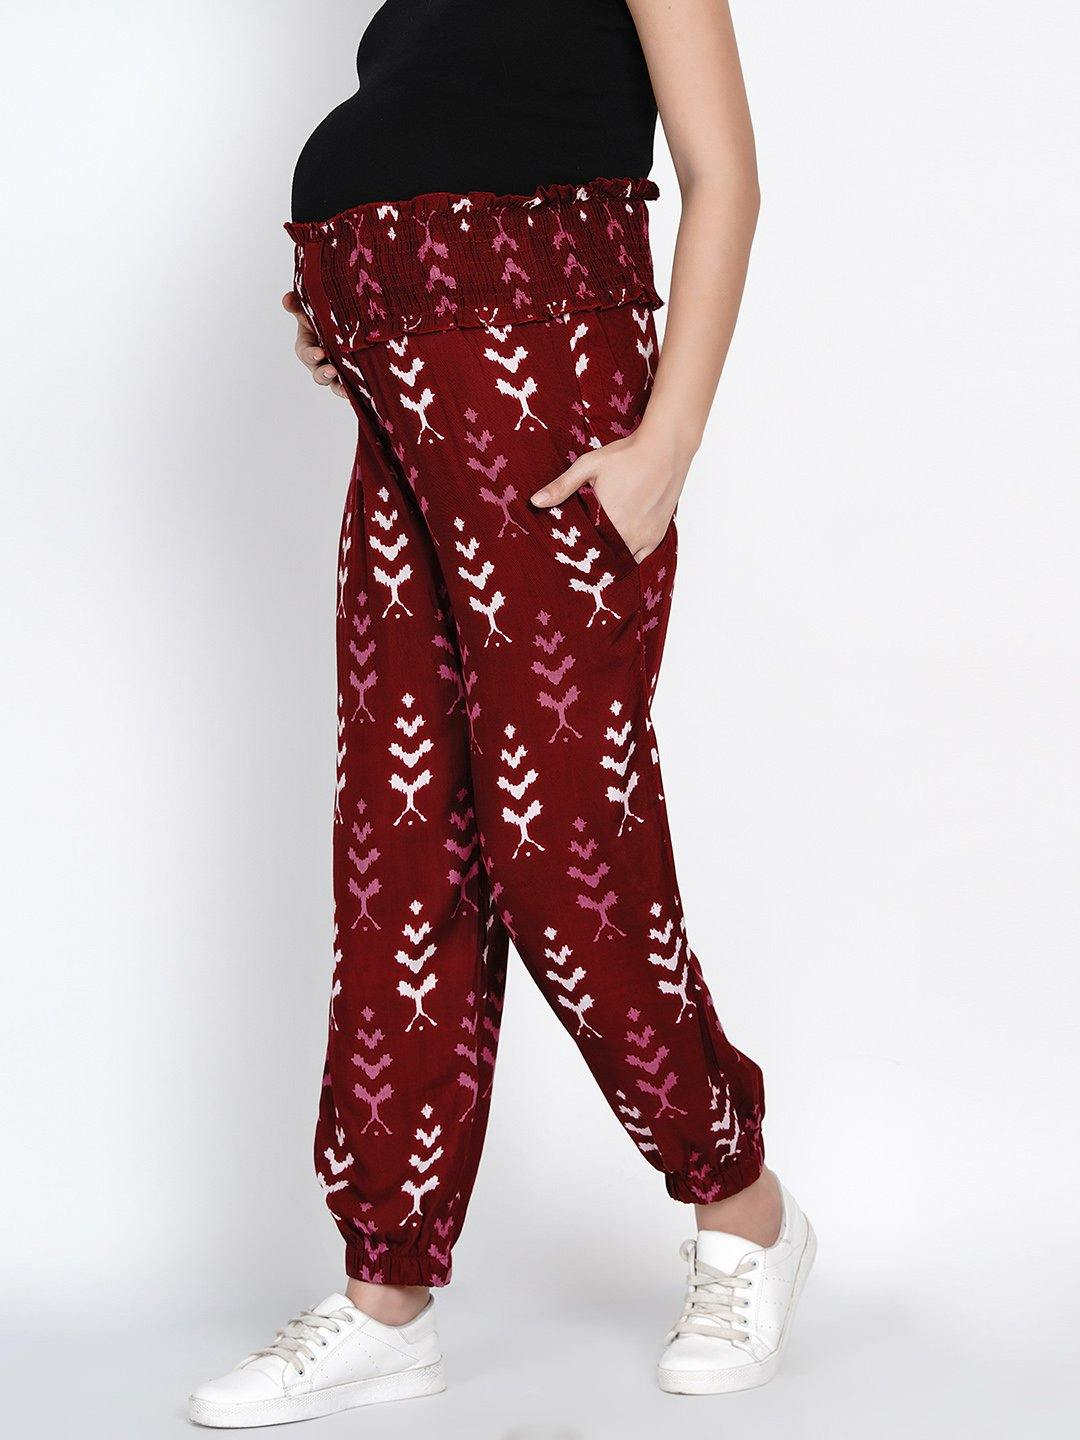 Mine4Nine - Trousers - Mine4Nine Women's Maroon Rayon Maternity Trousers